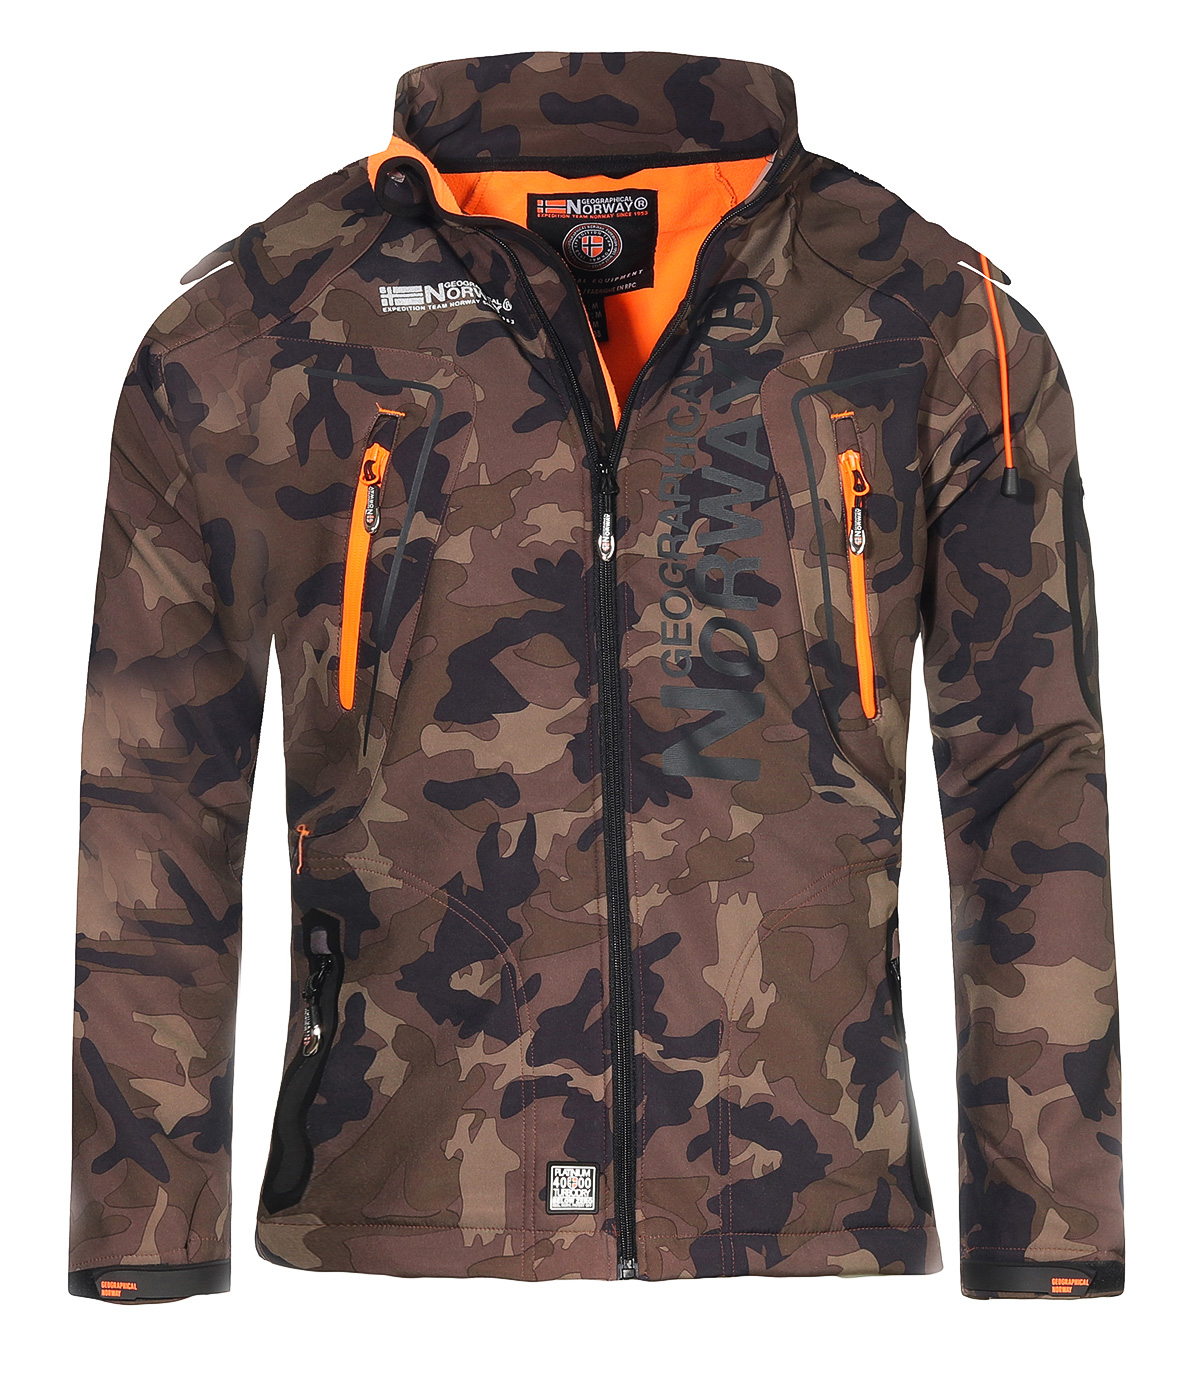 Geographical Norway River /& Forrest Mens Softshell Jacket Functional Outdoor Jacket Breathable Windproof Water-Repellent for Men